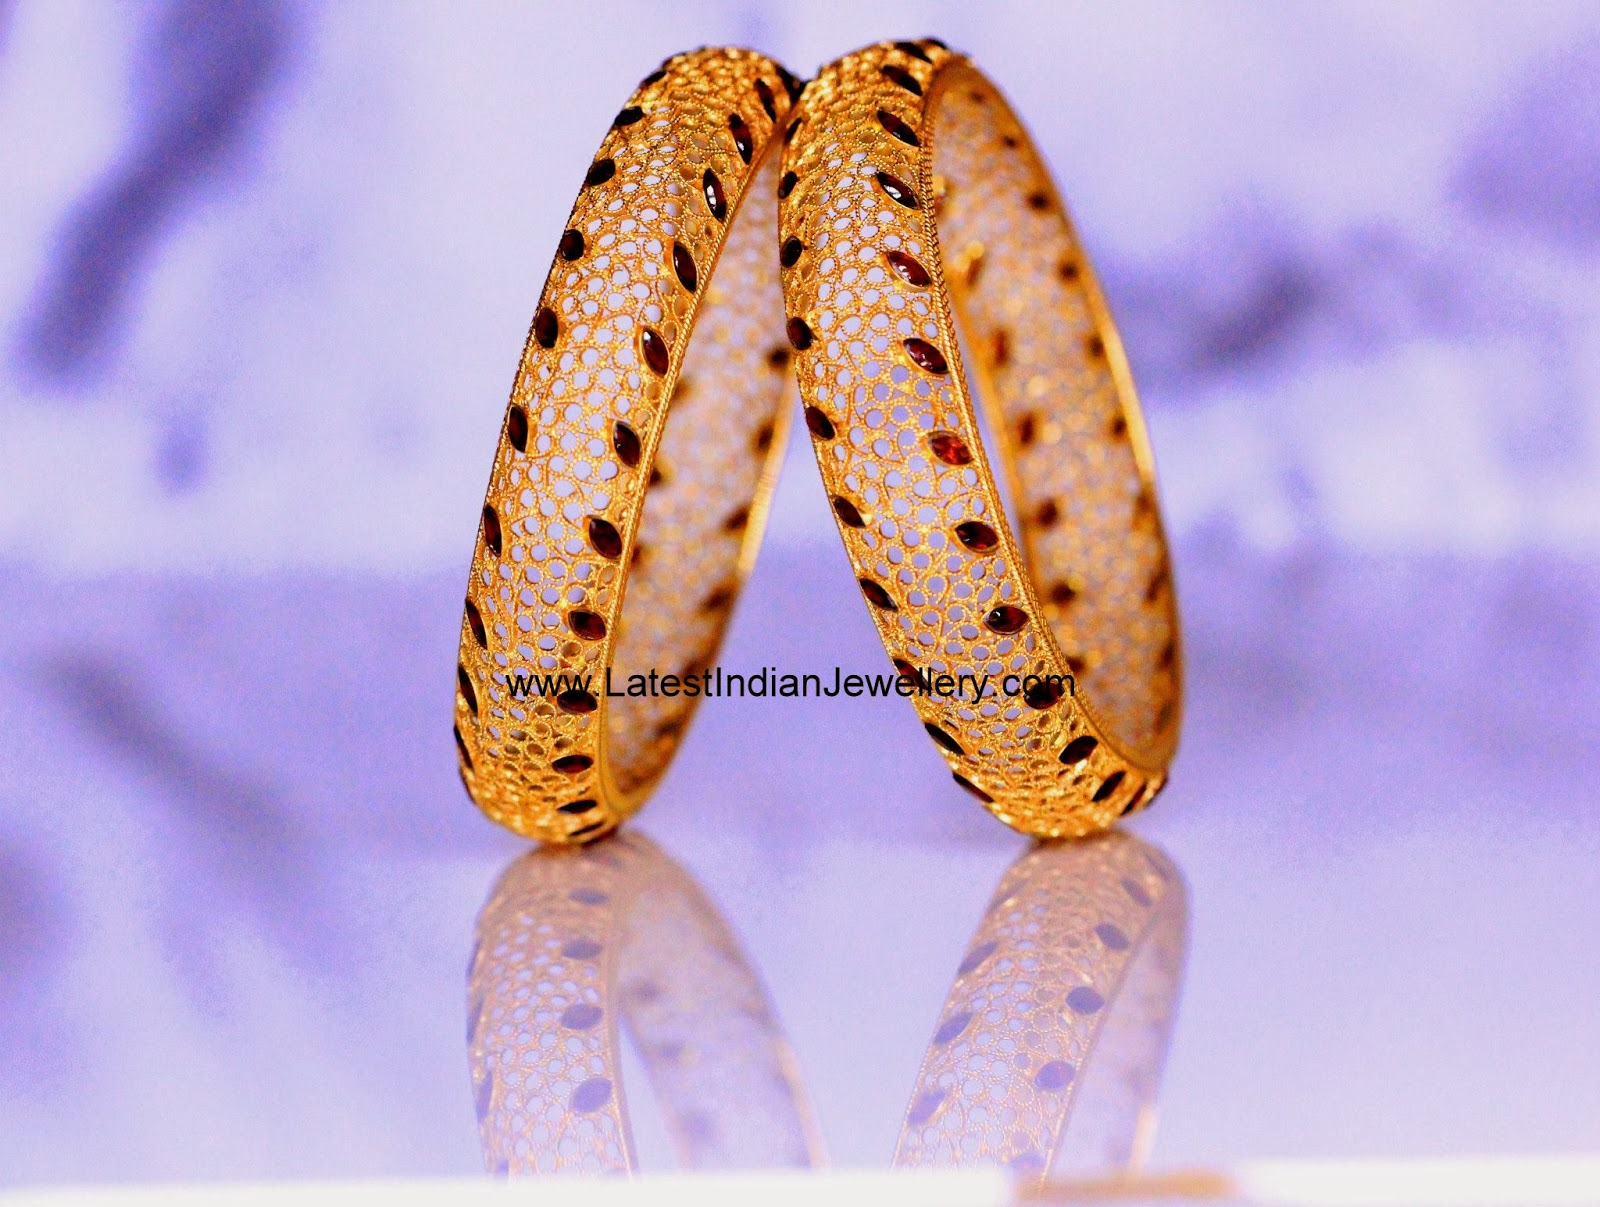 Fancy Gold and Ruby Bangles